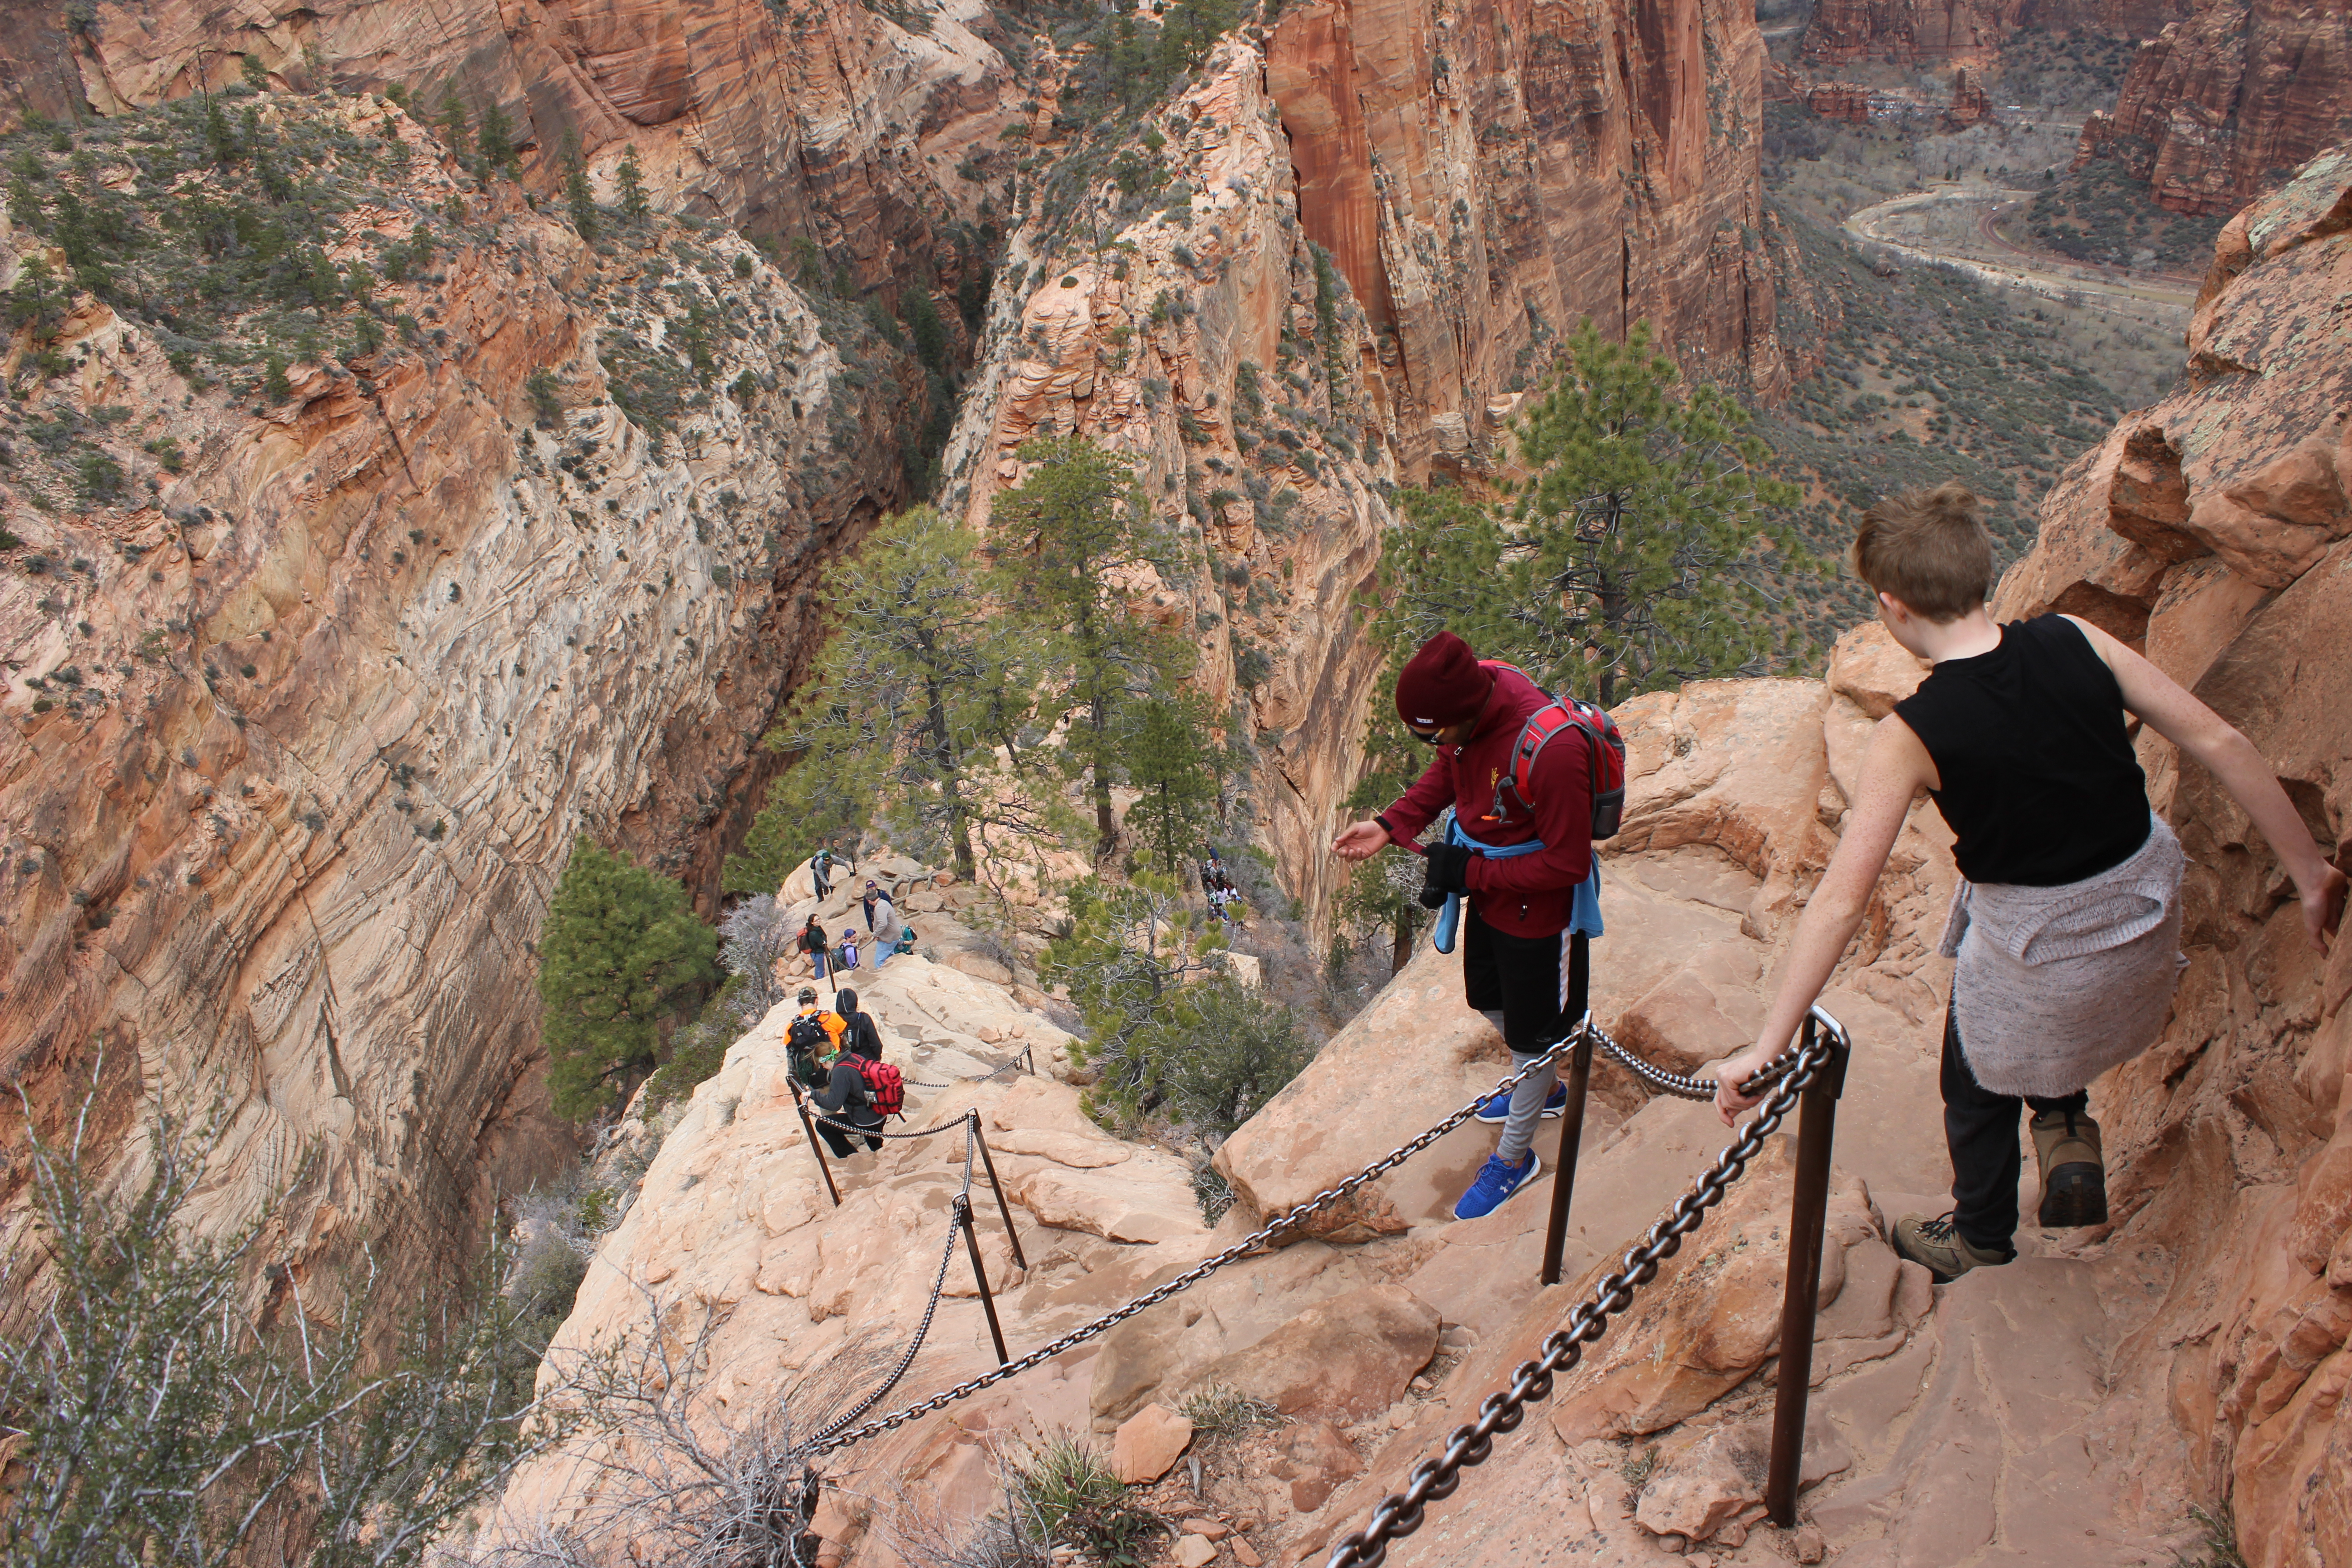 Rugged terrain abounds in the desert of Southwest Utah. This 2015 photo shows the last leg to the top of Angels Landing in Zion National Park, Utah, March 11, 2015 | Photo by Don Gilman, St. George News